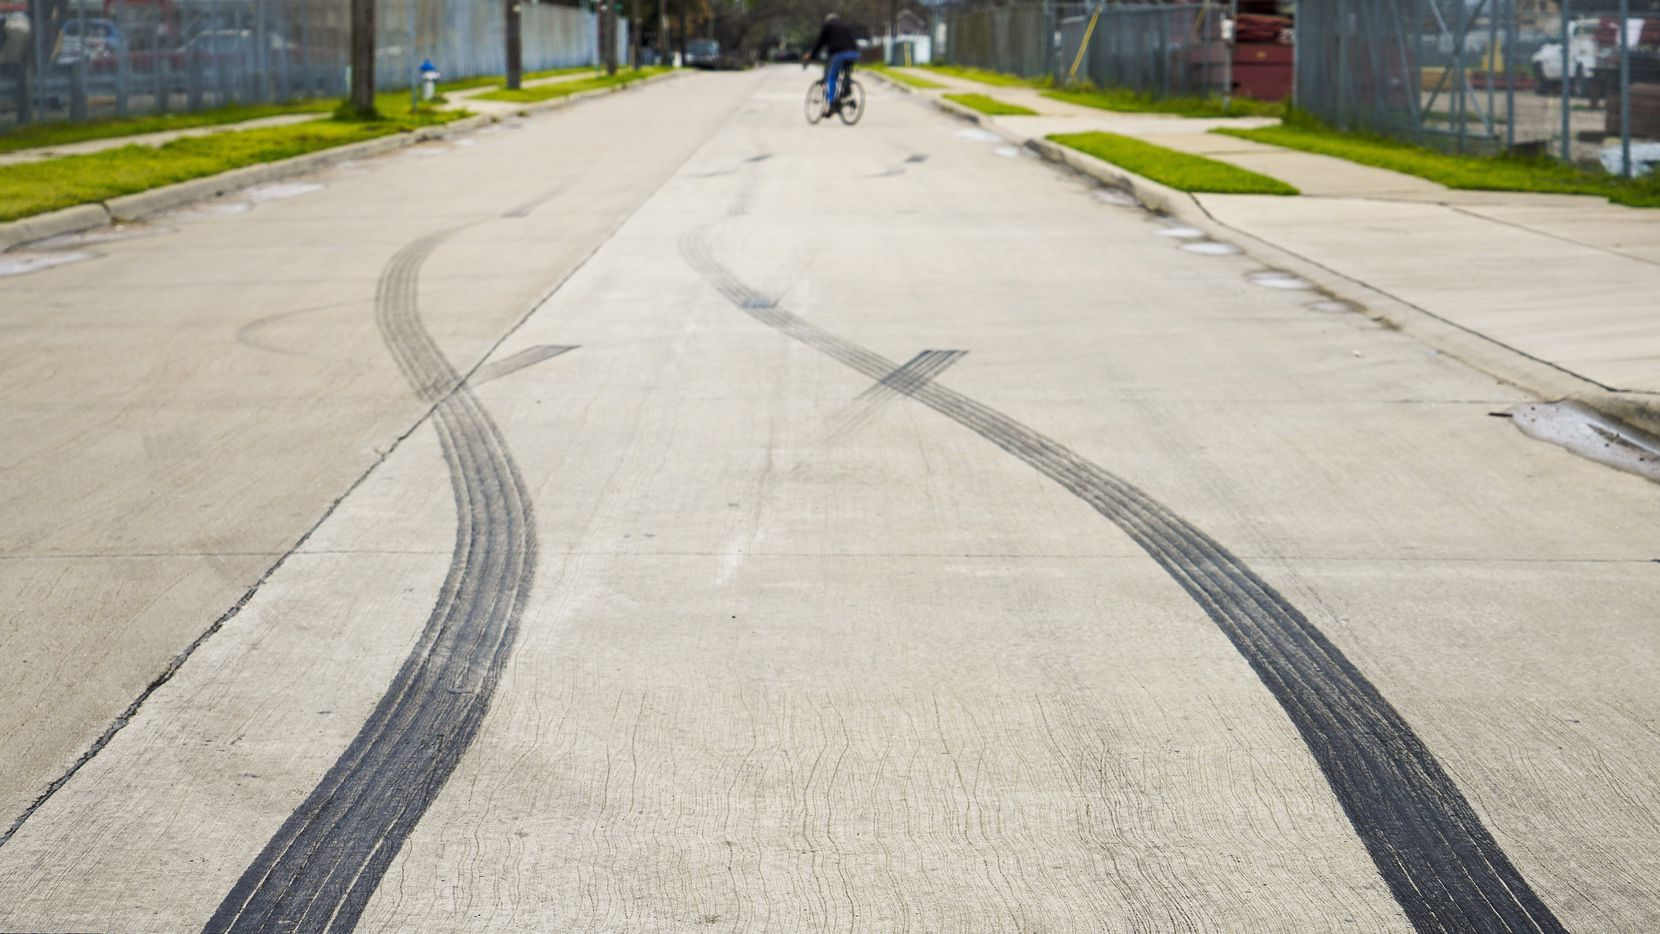 Skid marks are seen in the 1400 S. Henderson Avenue on Monday, March 9, 2020, in Dallas. DPD officers assigned to a racing initiative observed a large crowd of people and vehicles at the location where several vehicles doing donuts in the parking lot and when the officers drove onto the parking lot everyone began to scatter.